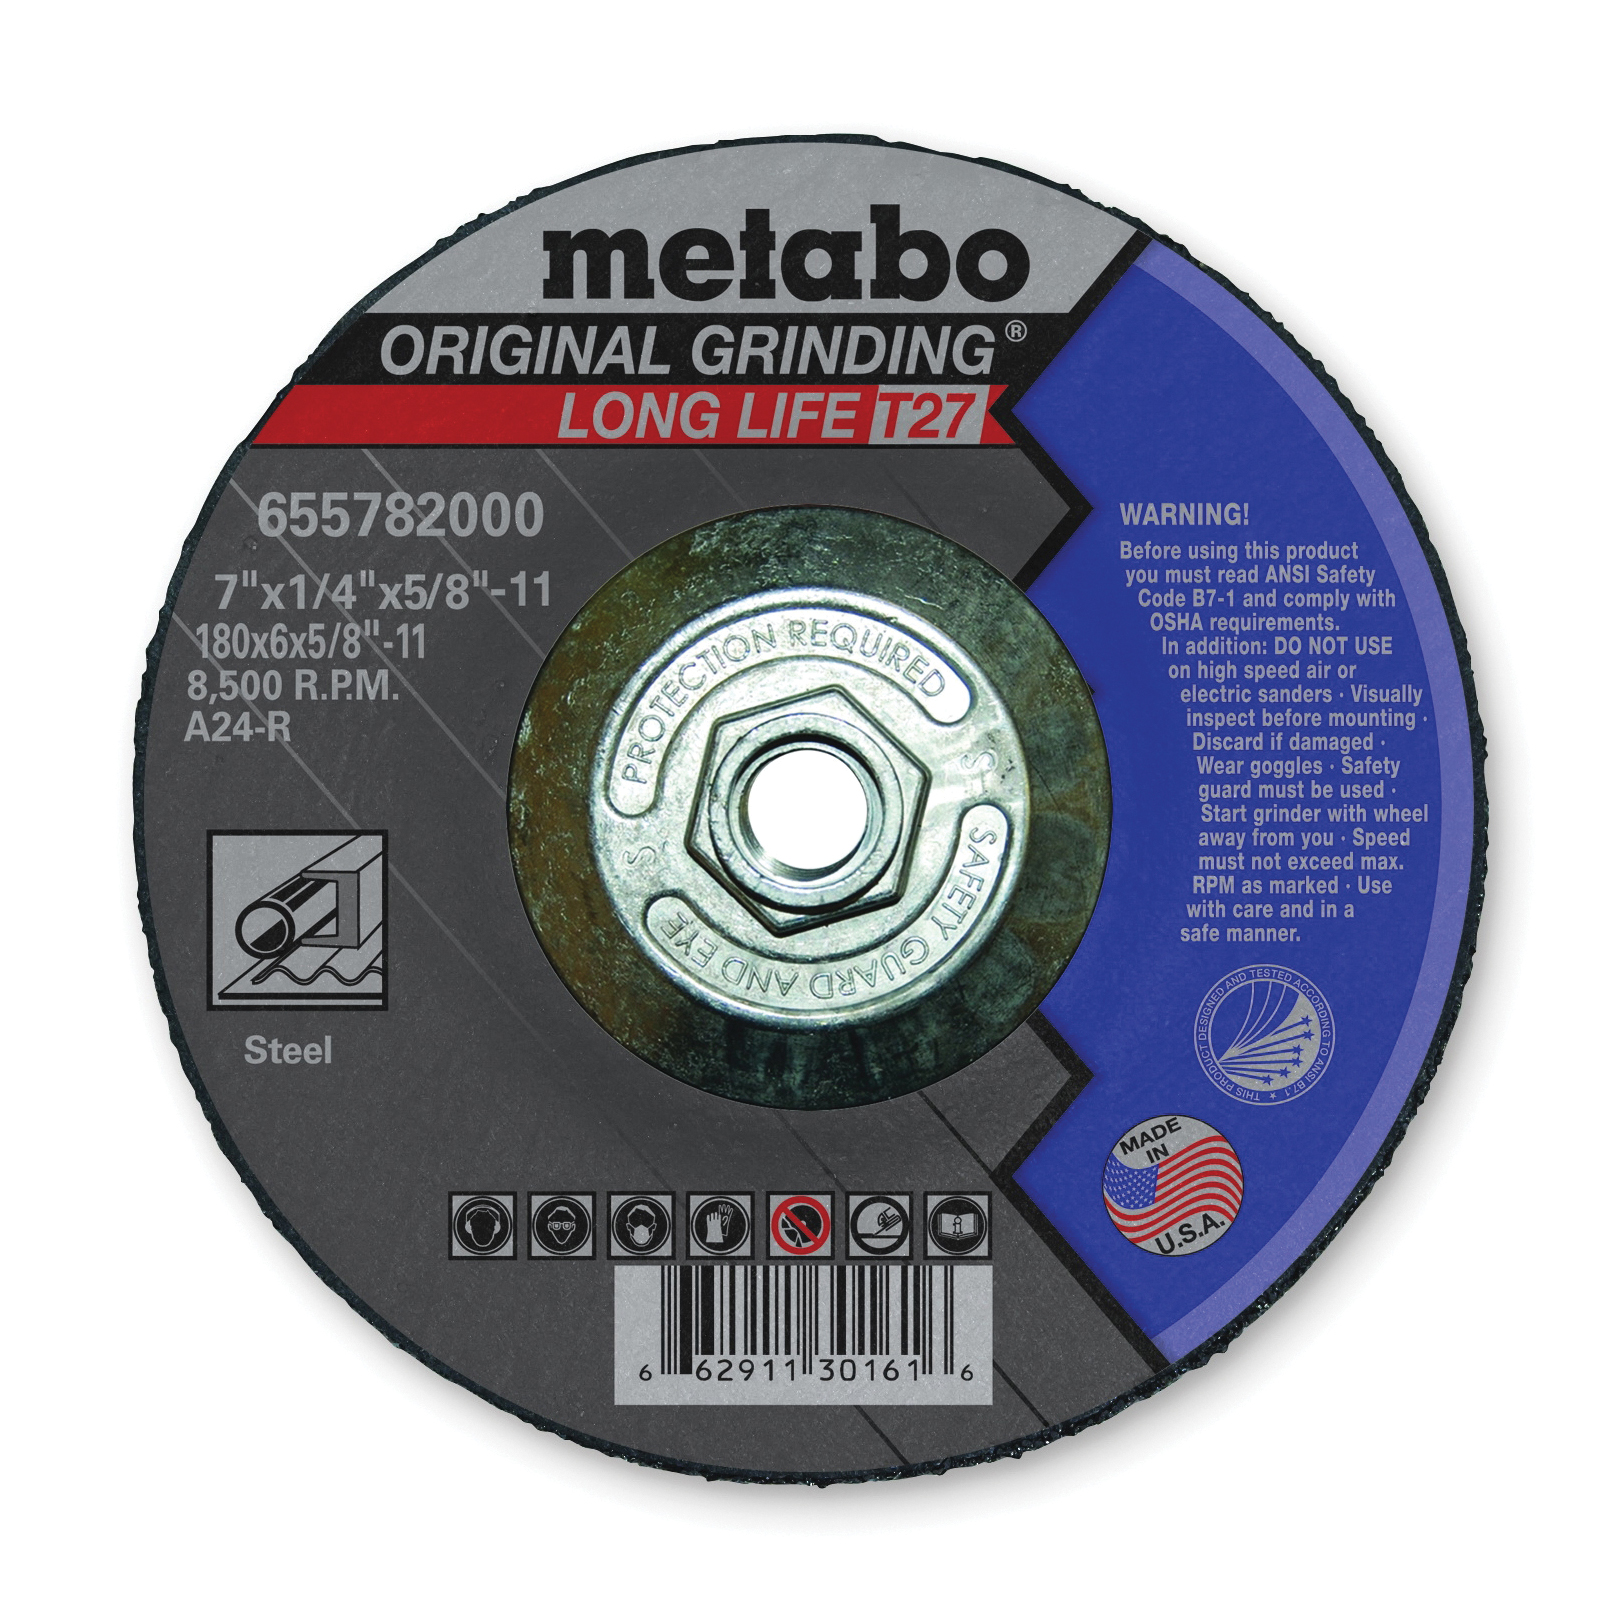 metabo® 655782000 Original Grinding® Long Life General Purpose Depressed Center Wheel With Hub, 7 in Dia x 1/4 in THK, A24R Grit, Aluminum Oxide Abrasive